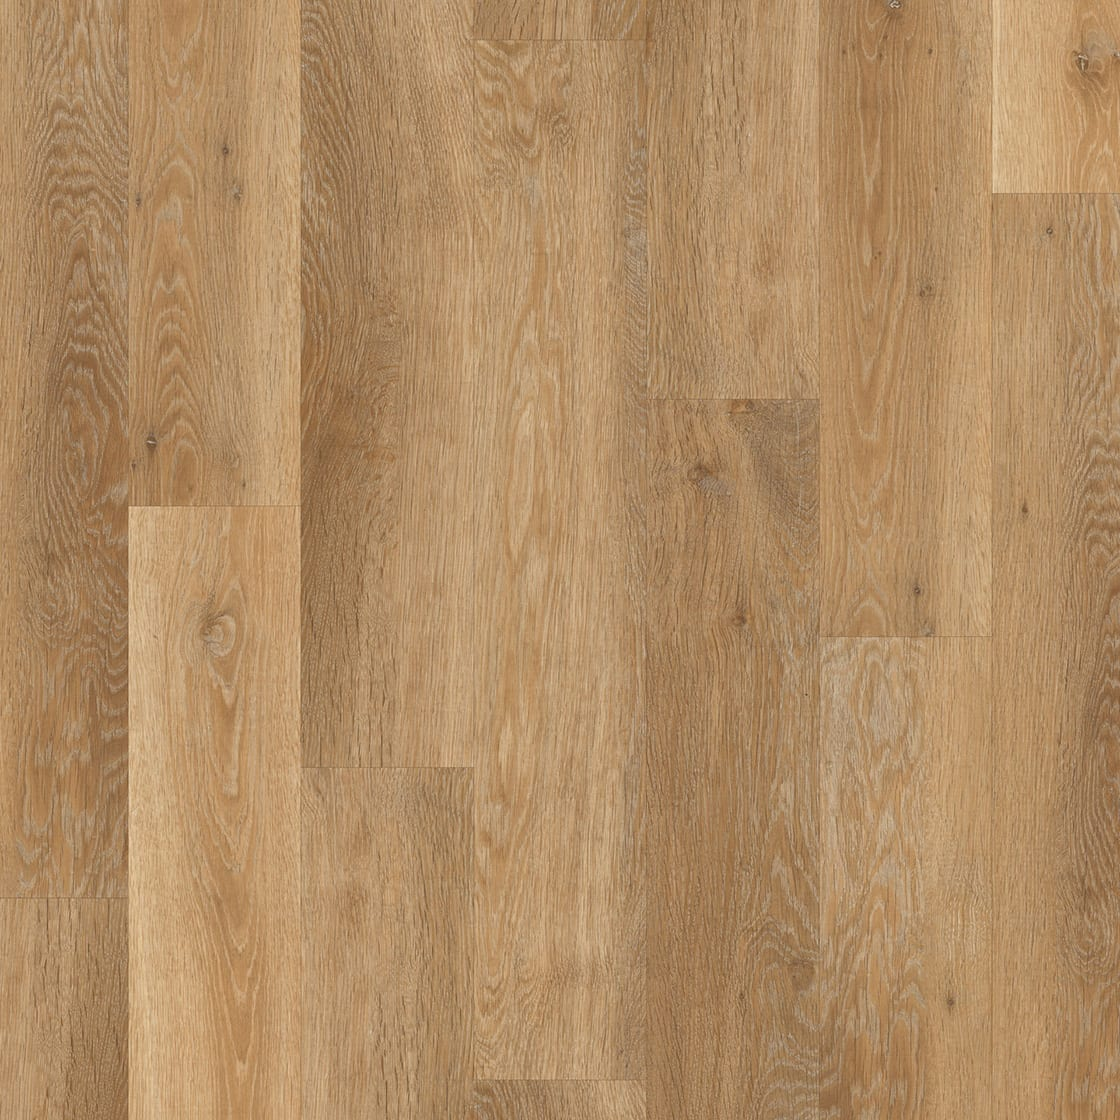 KP94 Pale Limed Oak OH